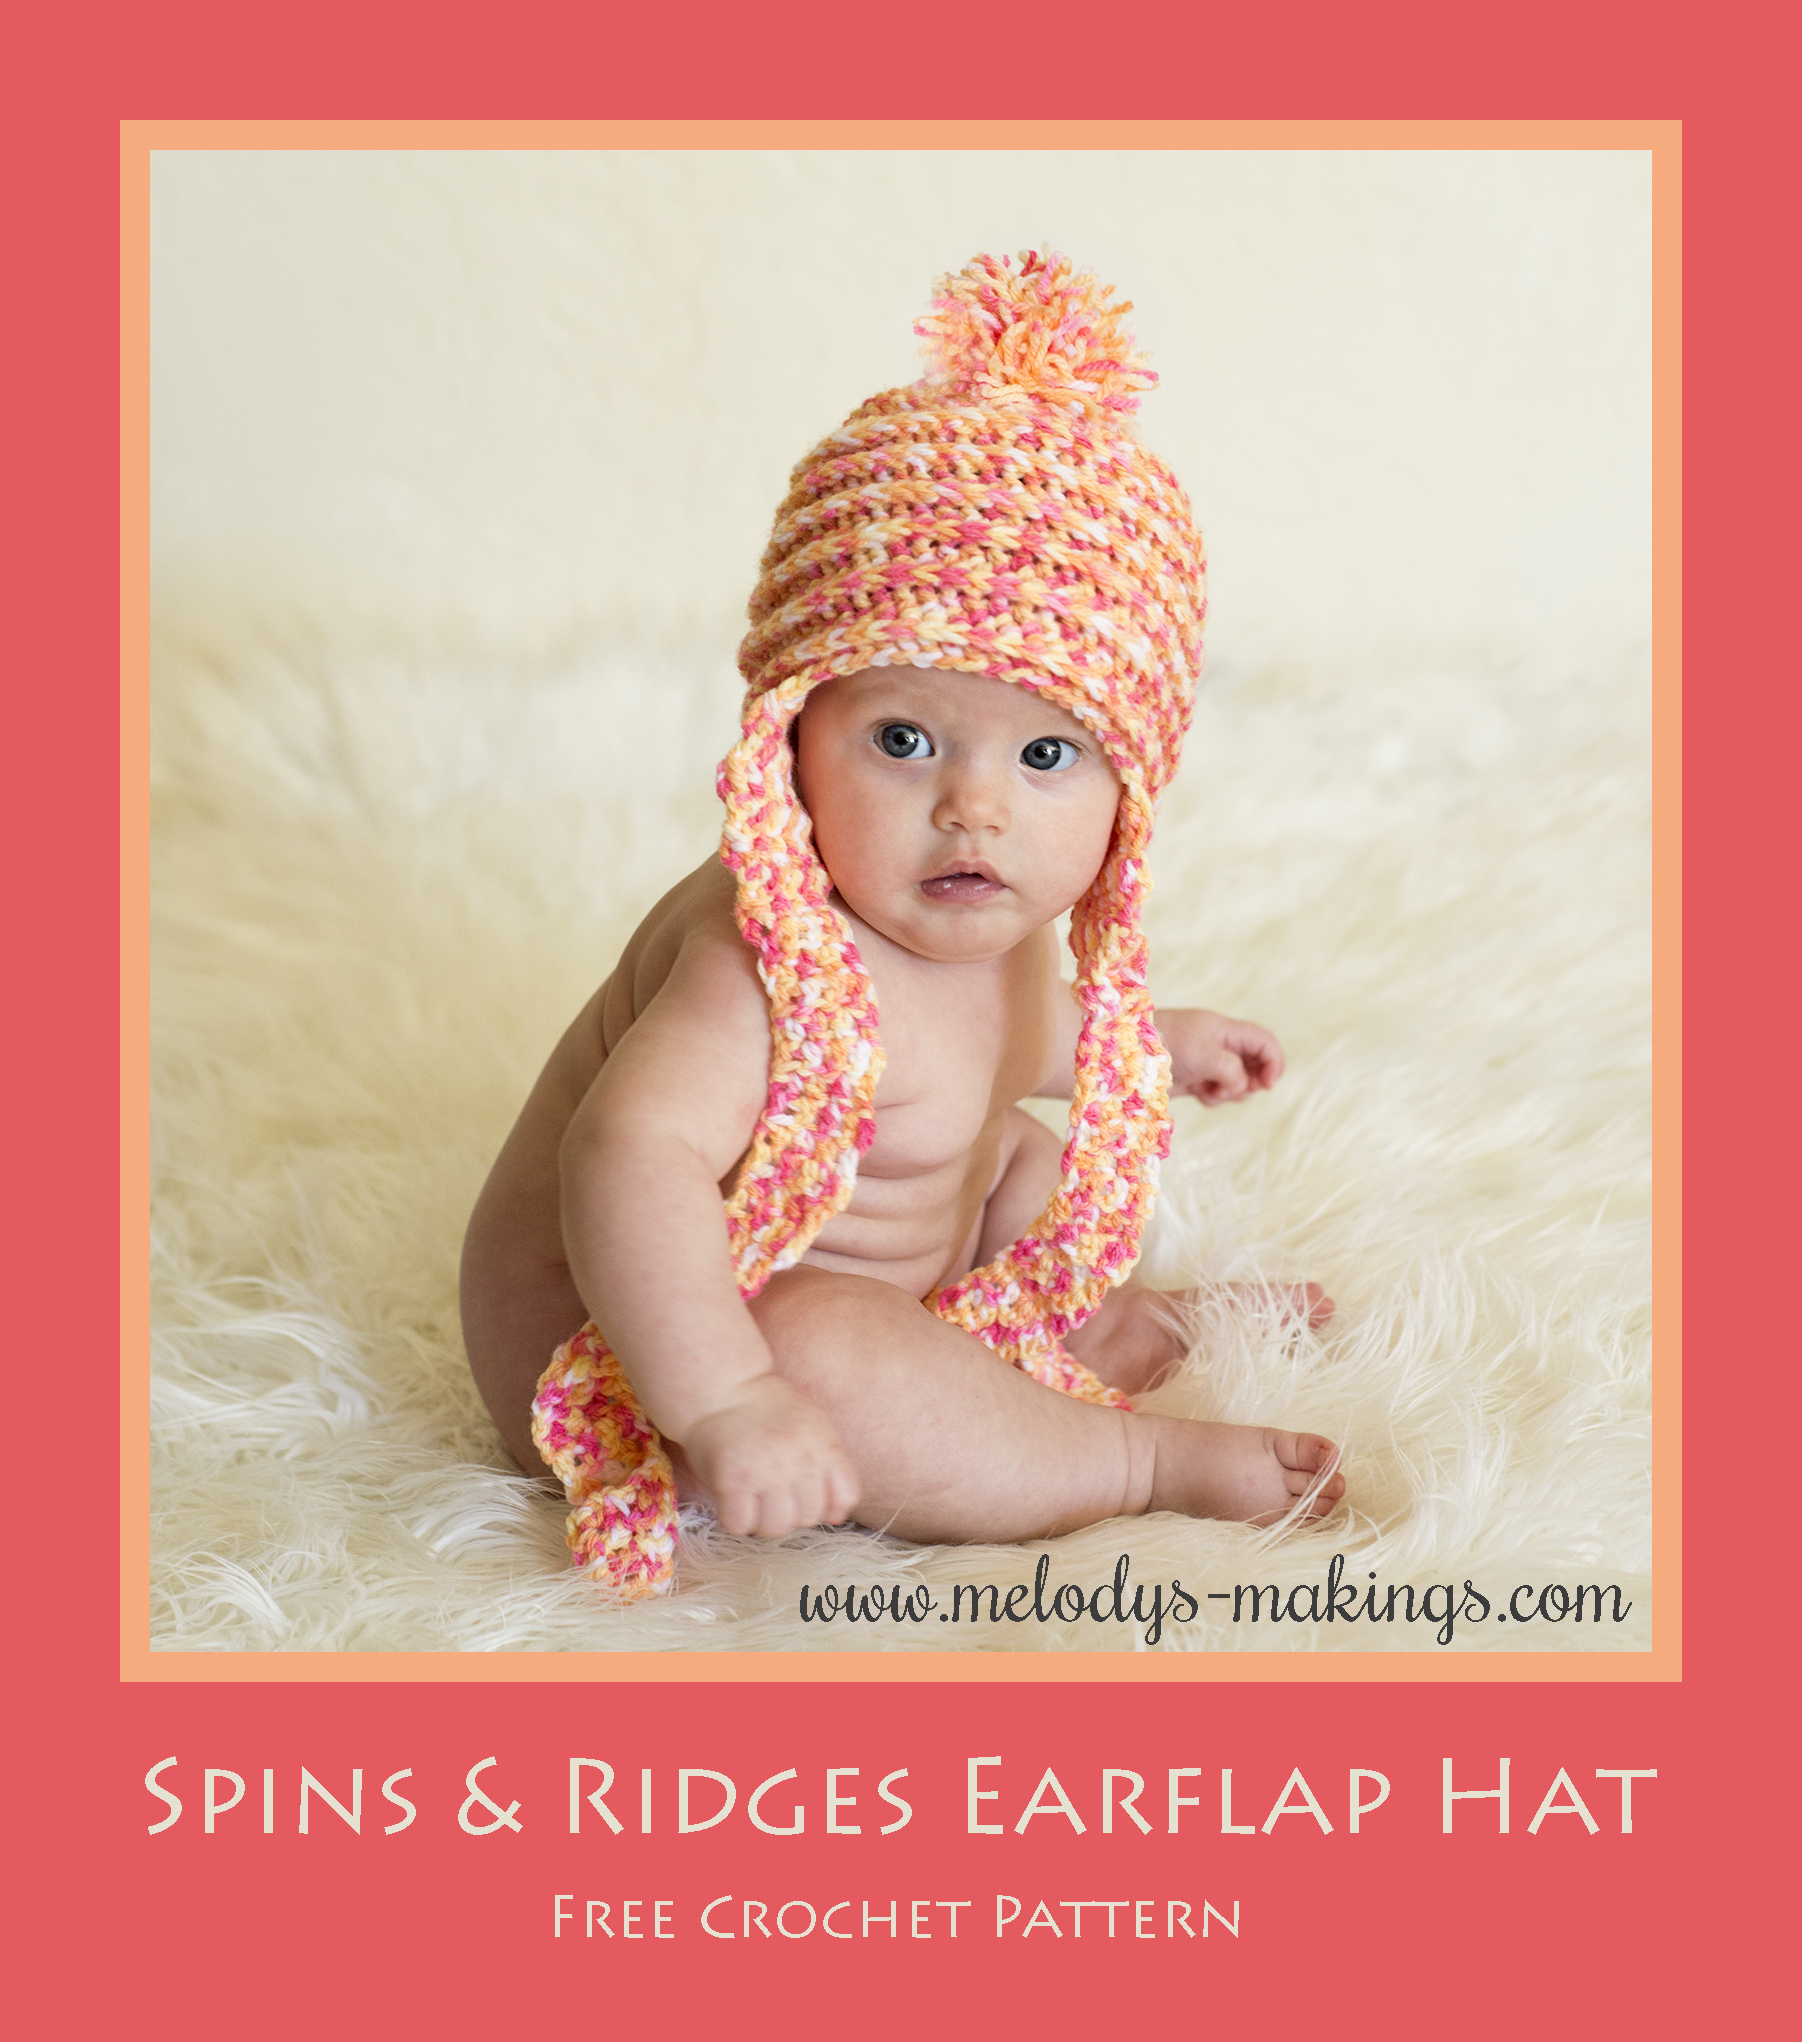 Knit Earflap Hat Pattern For Toddler